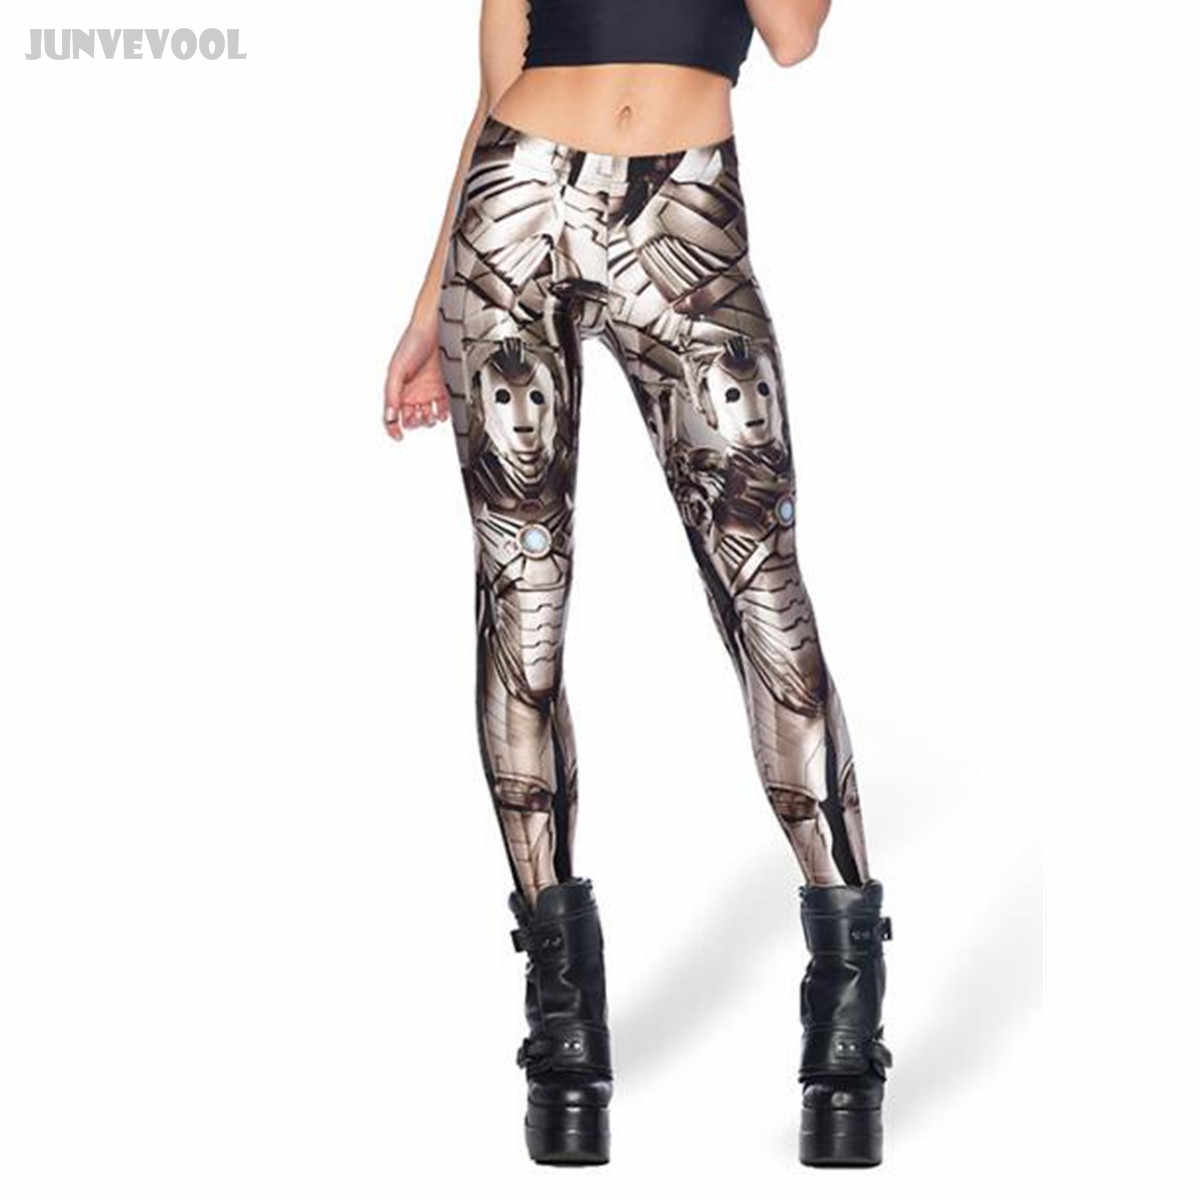 86530caaf68d5 Workout Leggings Fitness Women Gyms Pant Sexy 3D Iron Steel Robot Print  Women's Stretch Skinny Legging